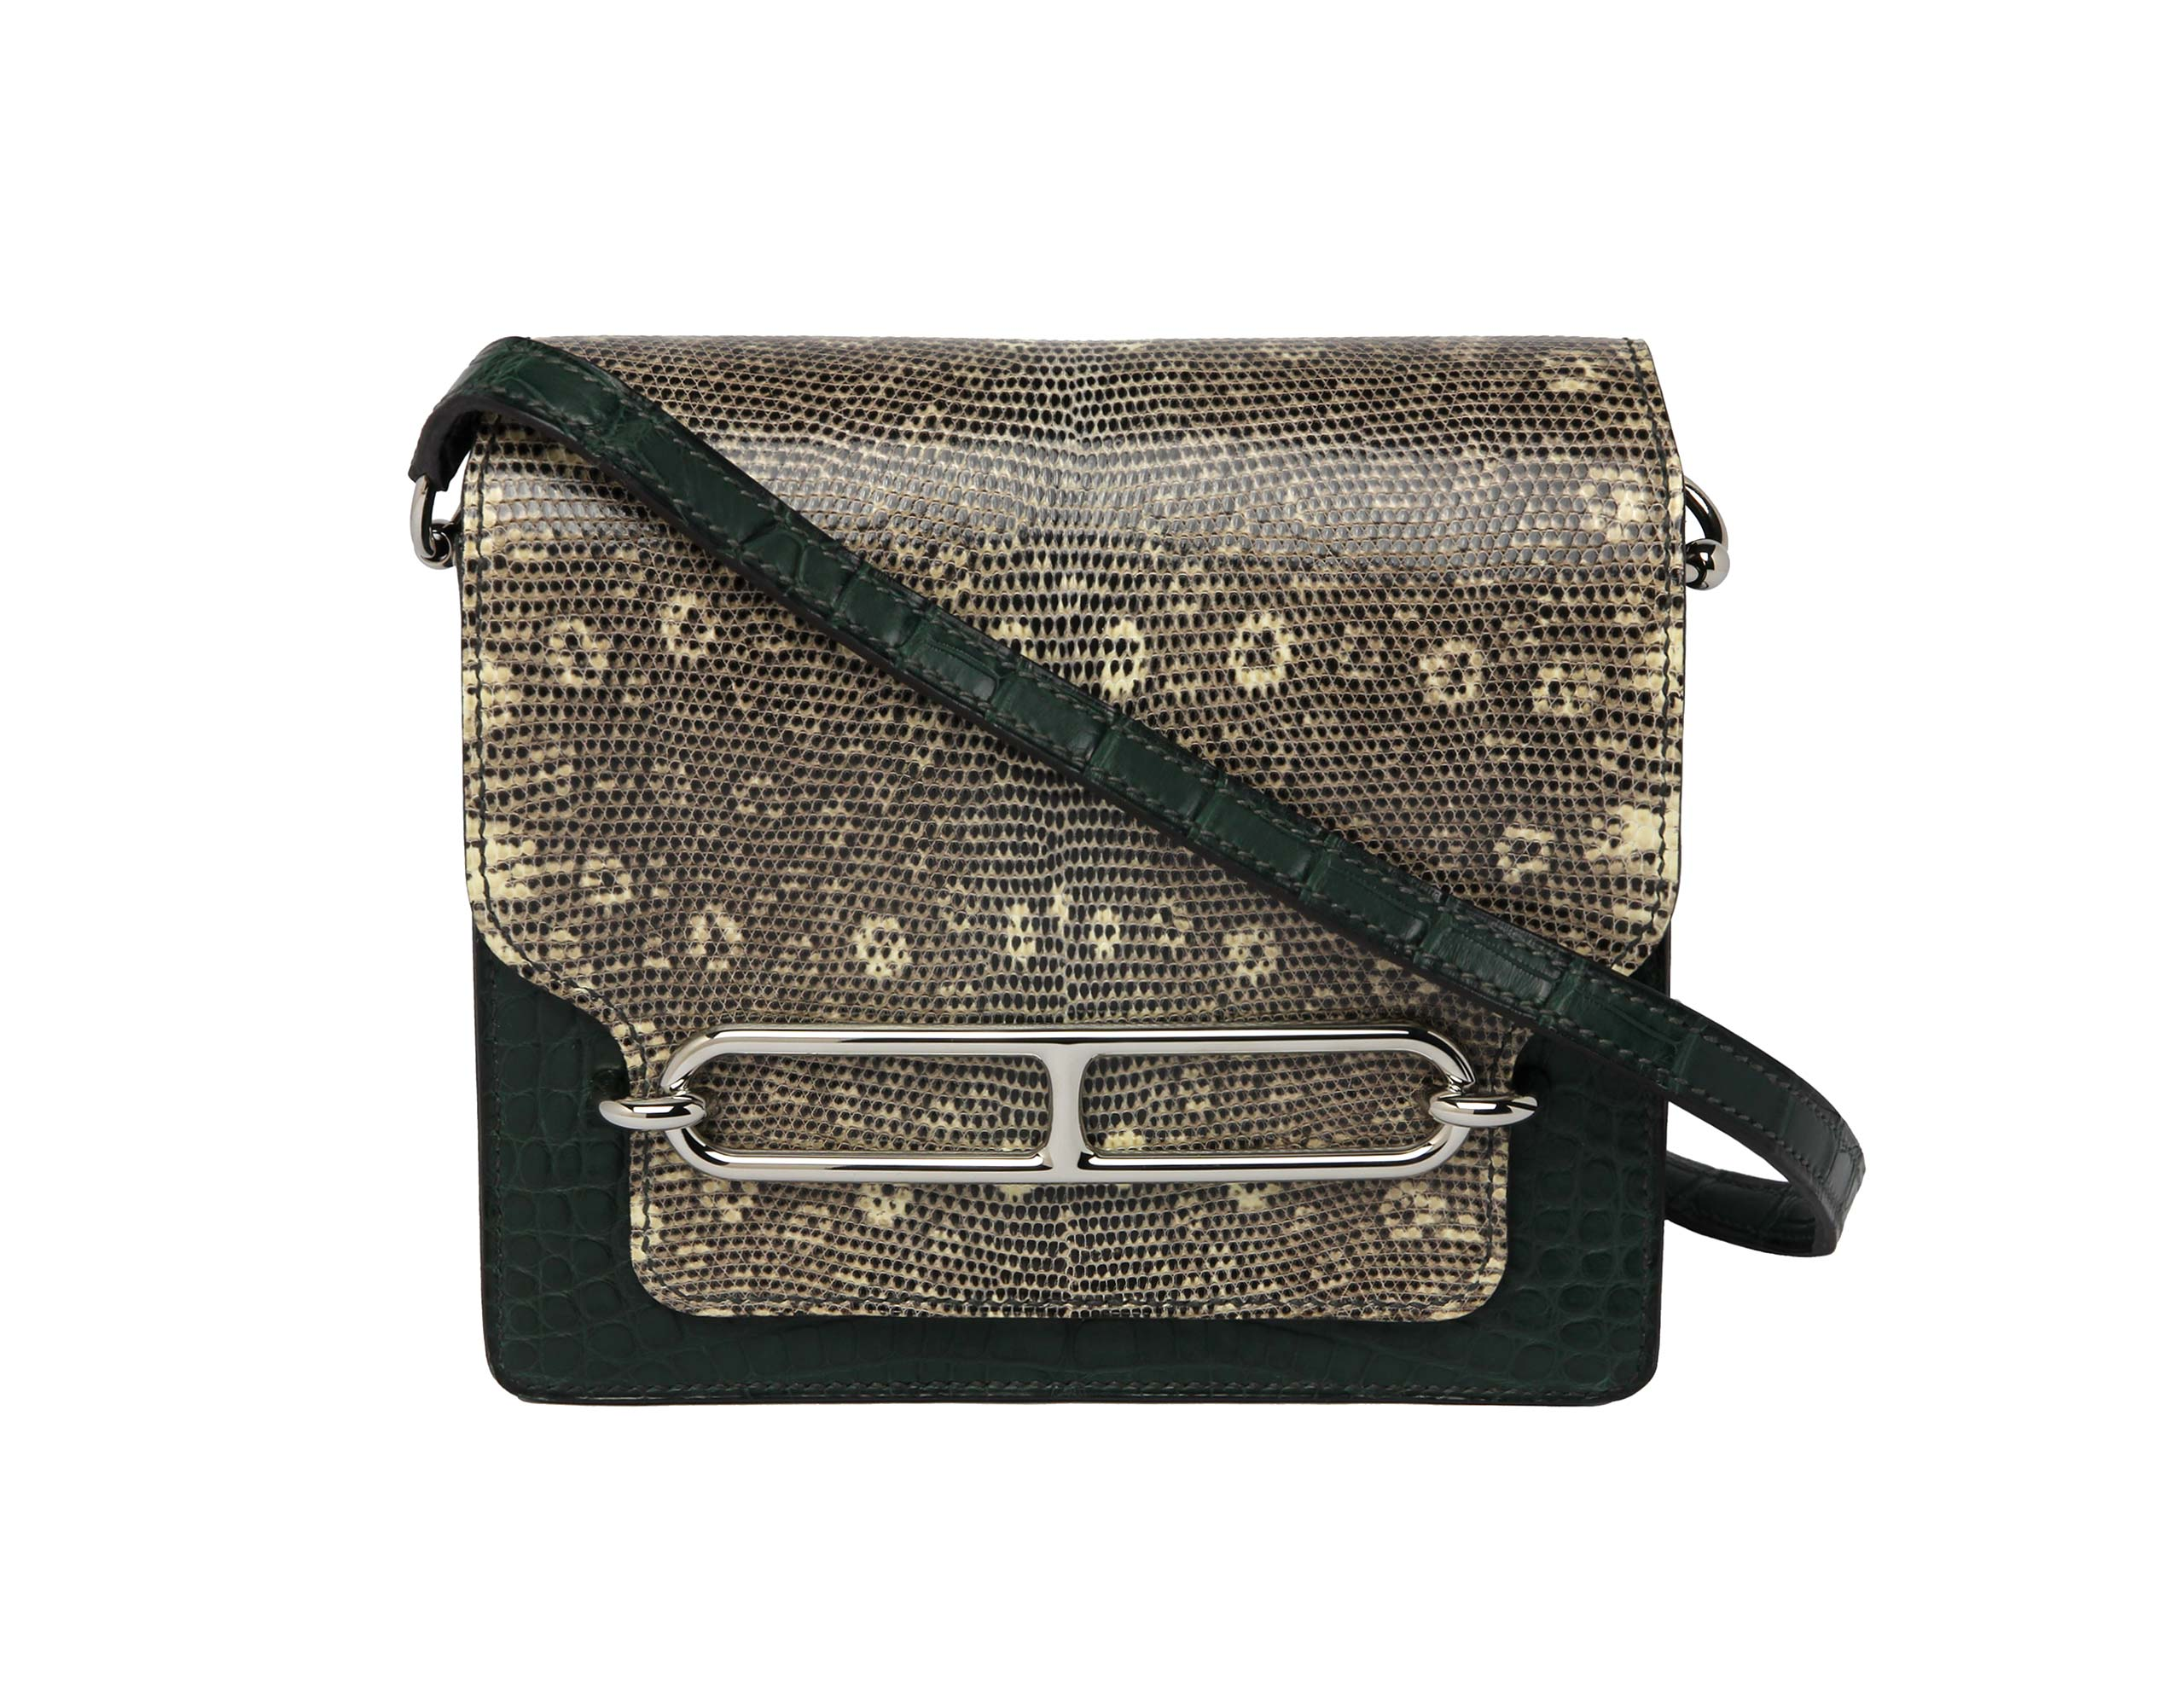 hermes-mini-roulis-vert-fonce-ombre-matt-alligator-lizard-phw-mr01-LG01